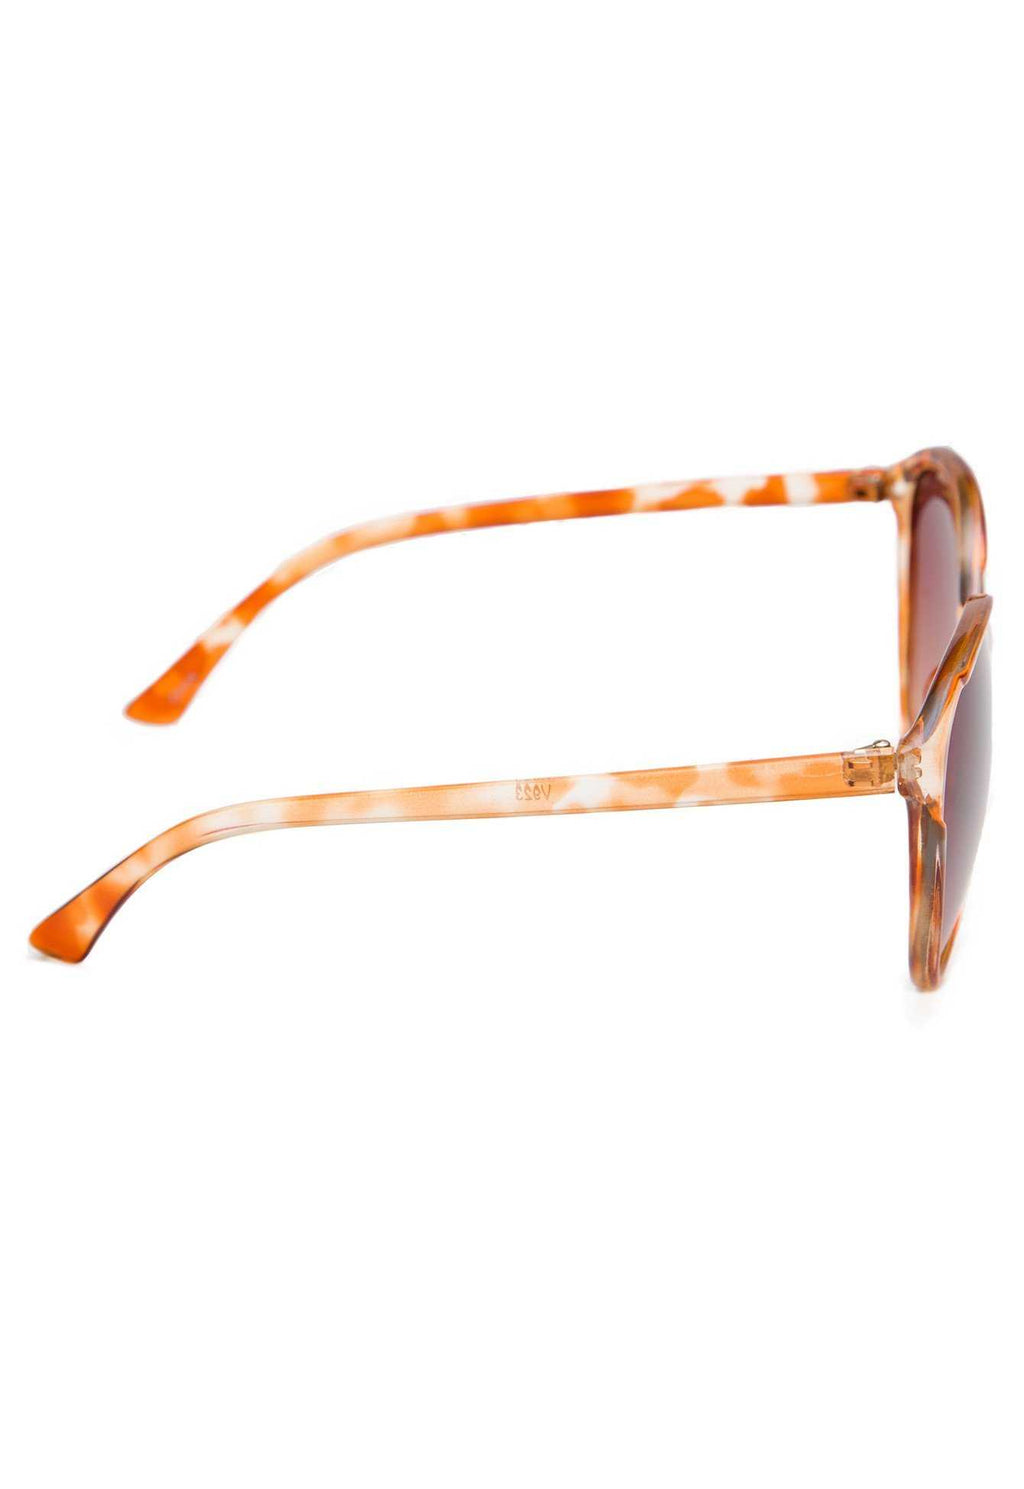 Accessories - Hello Goodbye Sunglasses - Coral